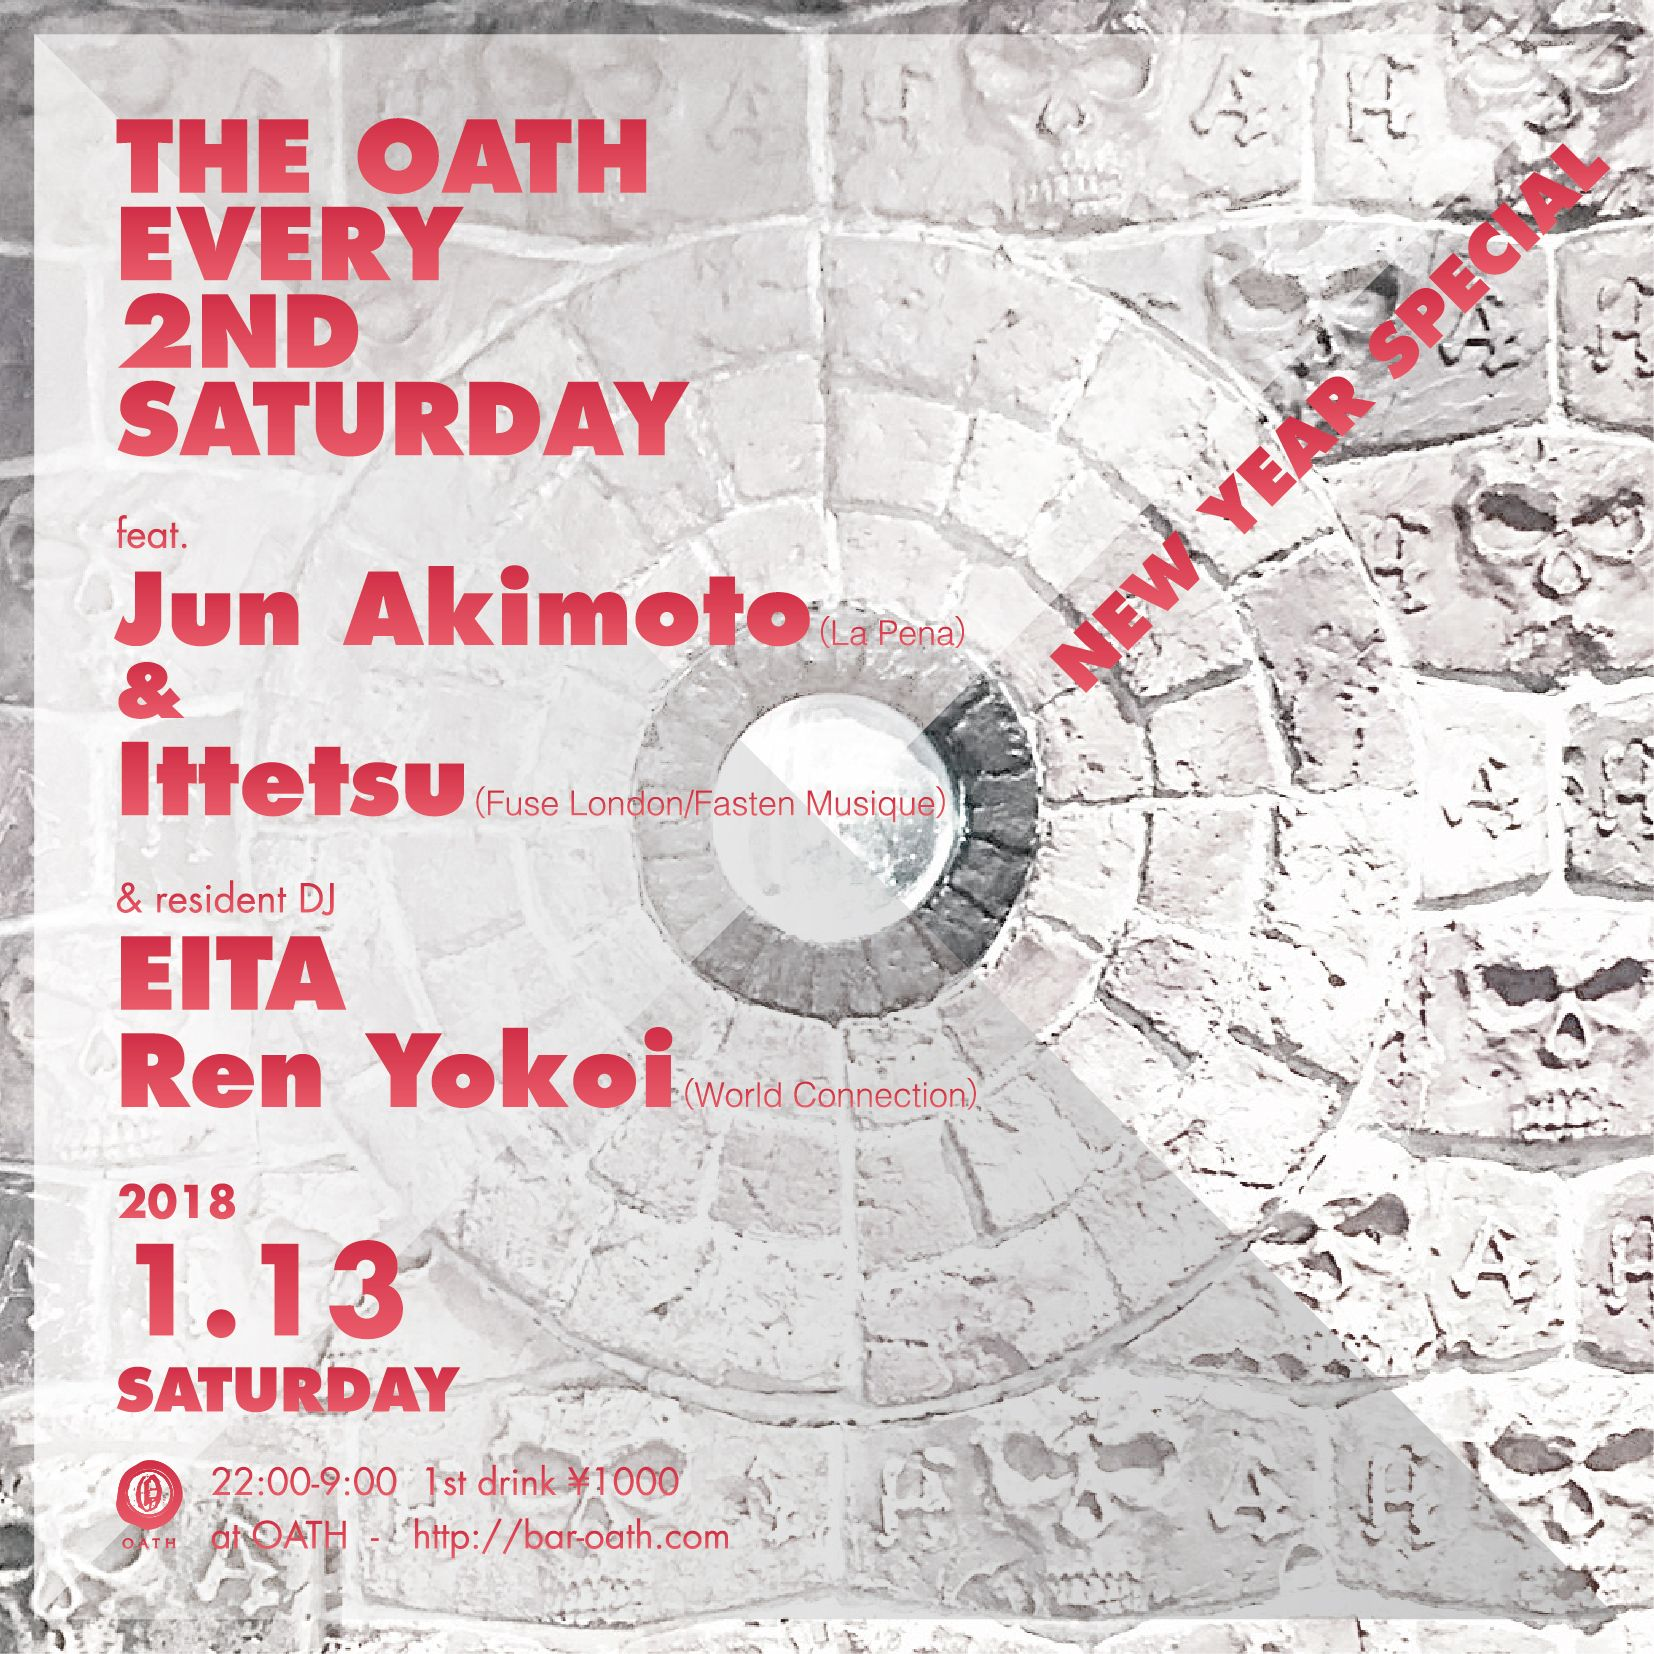 2nd Saturday Poets 2: THE OATH -Every 2nd Saturday- [2018-01-13 (Sat